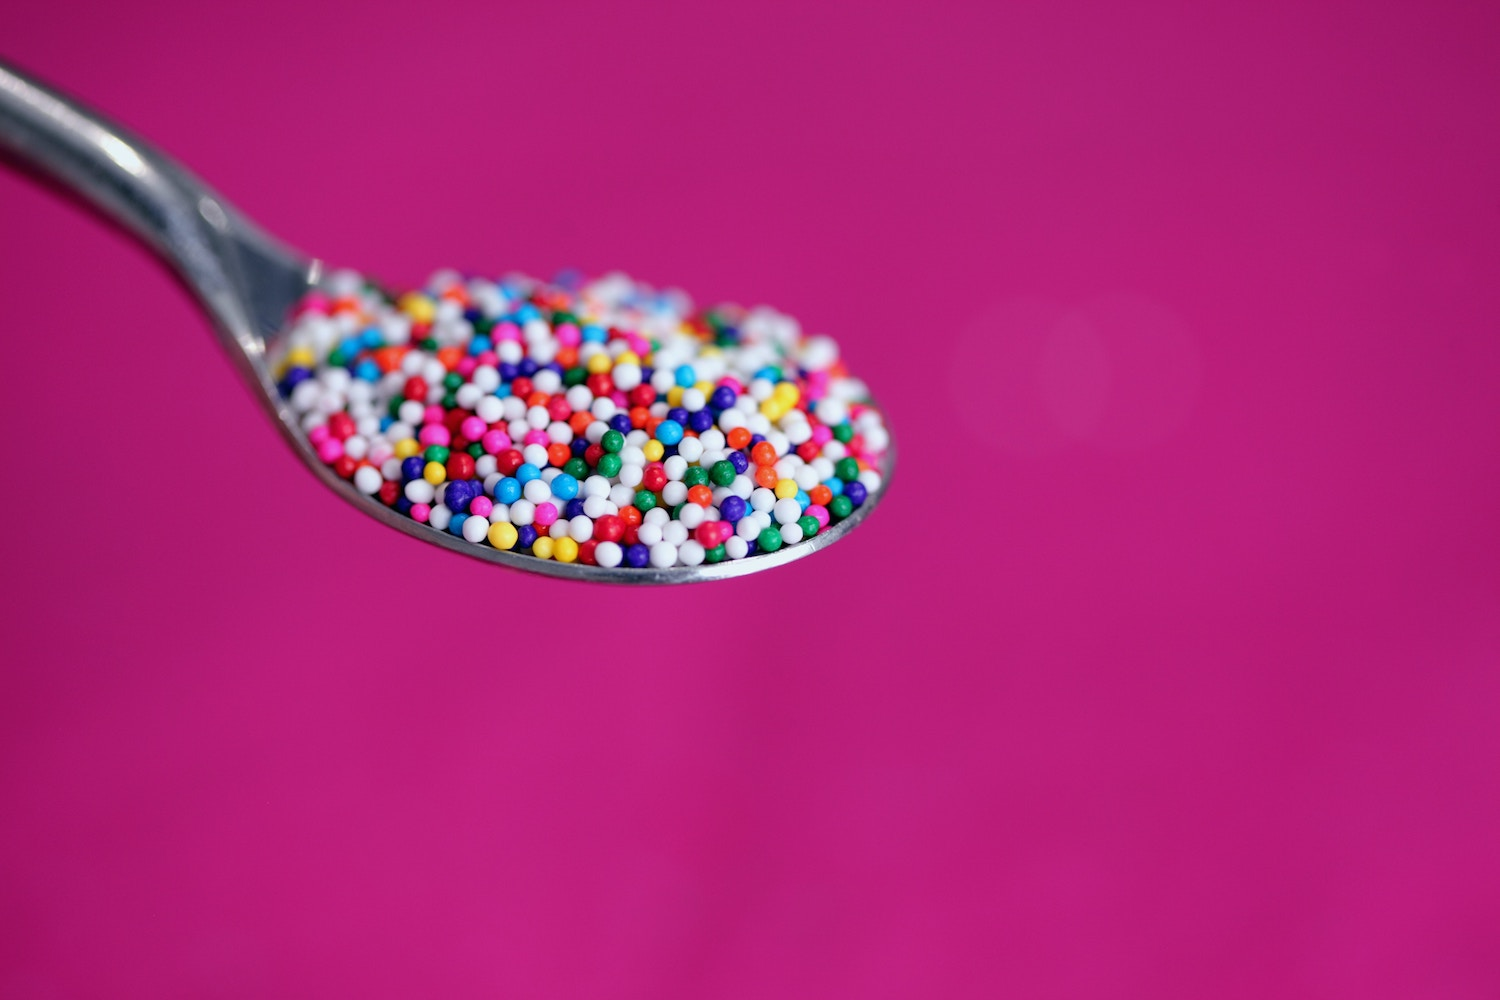 Lee found that bright colors, round shapes (and sprinkles) all have the ability to create moments of joy. Photo by  Sharon McCutcheon on  Unsplash